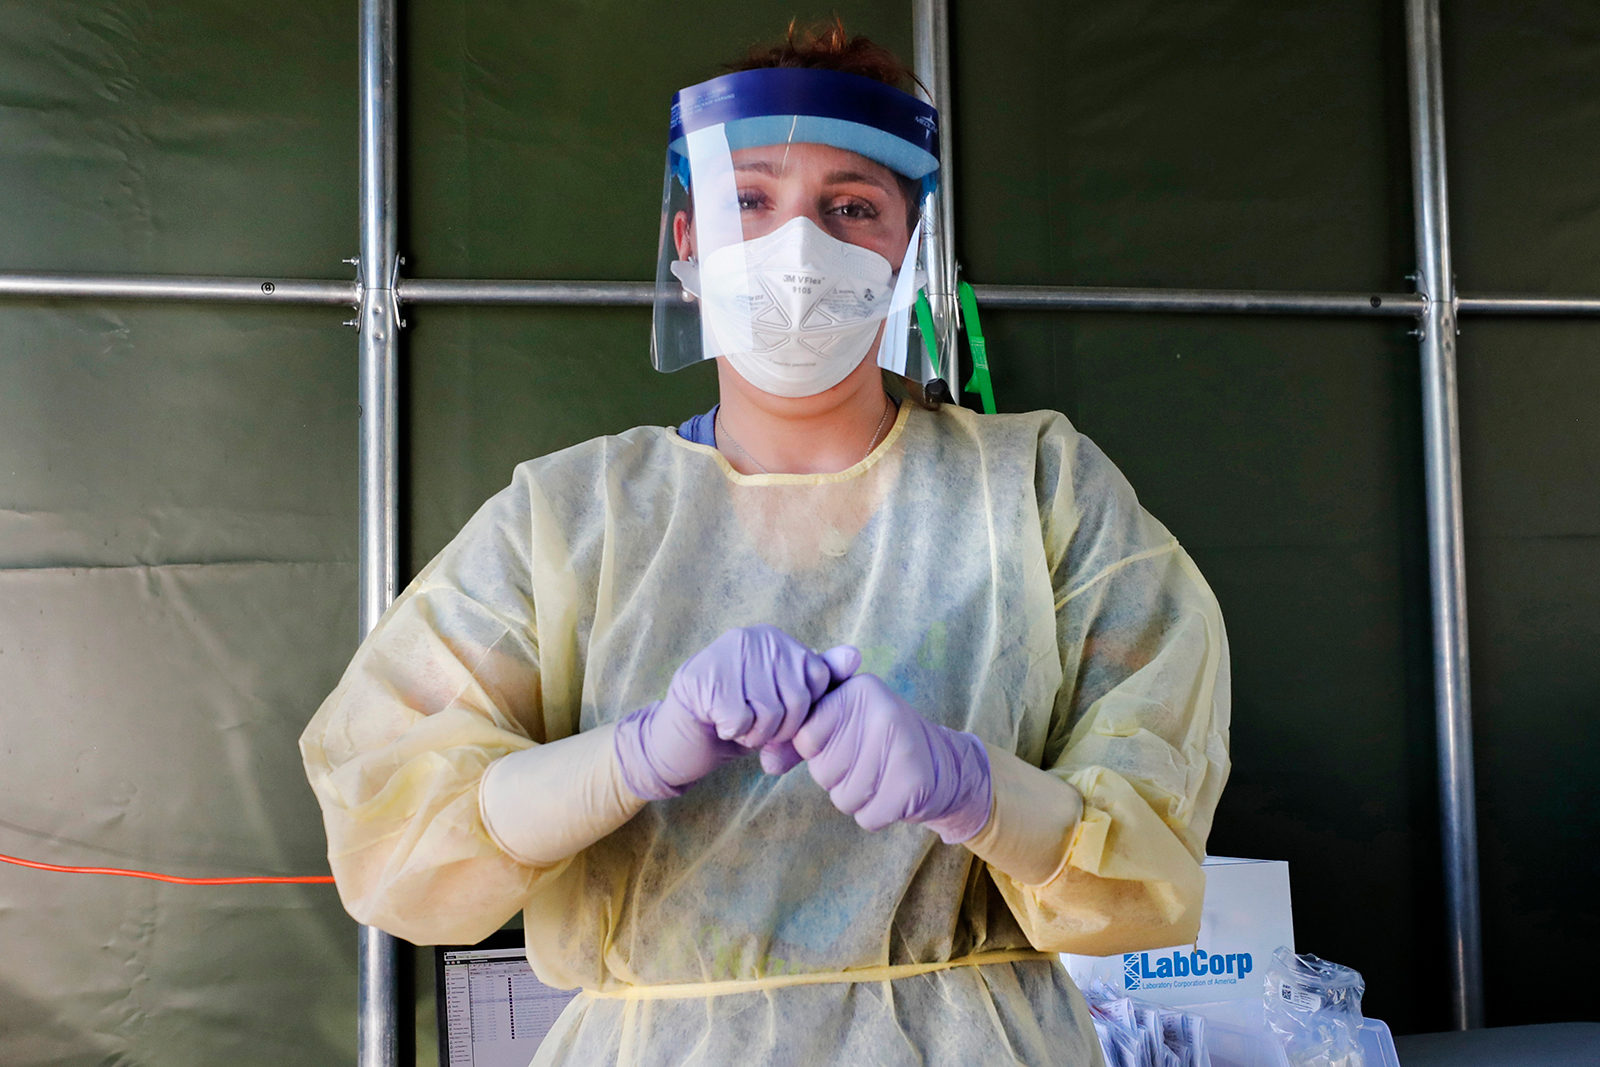 A medical worker prepares to administer a Covid-19 virus test at a drive-thru care testing site at the Derry Medical Center on Wednesday, June 17, in Derry, New Hampshire.